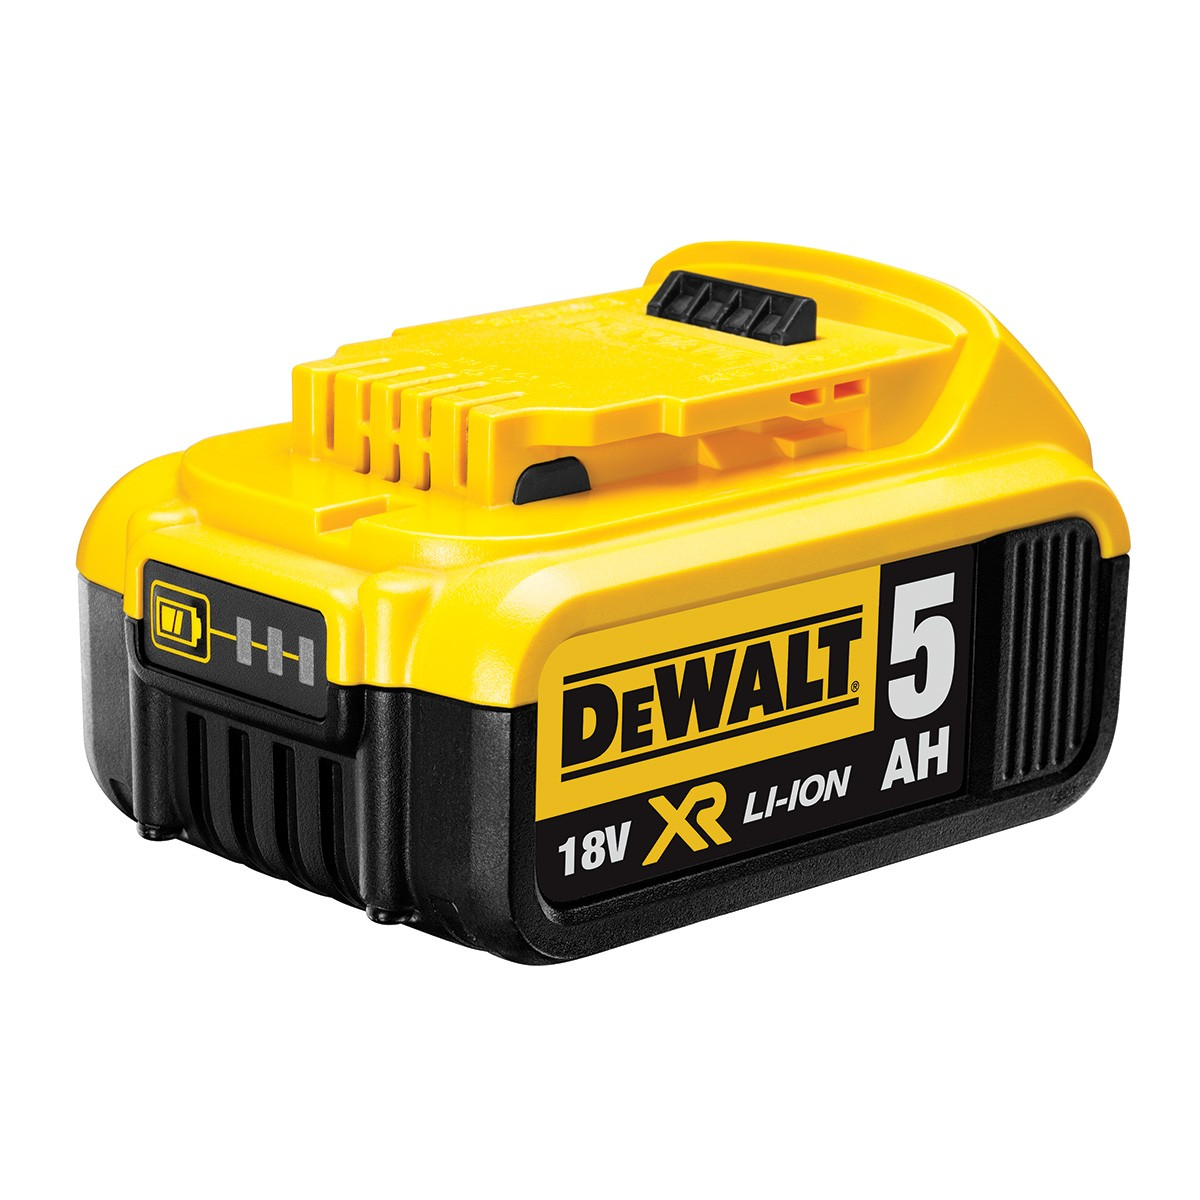 DeWalt DCB184 18v 5Ah Li-Ion XR Slide Battery